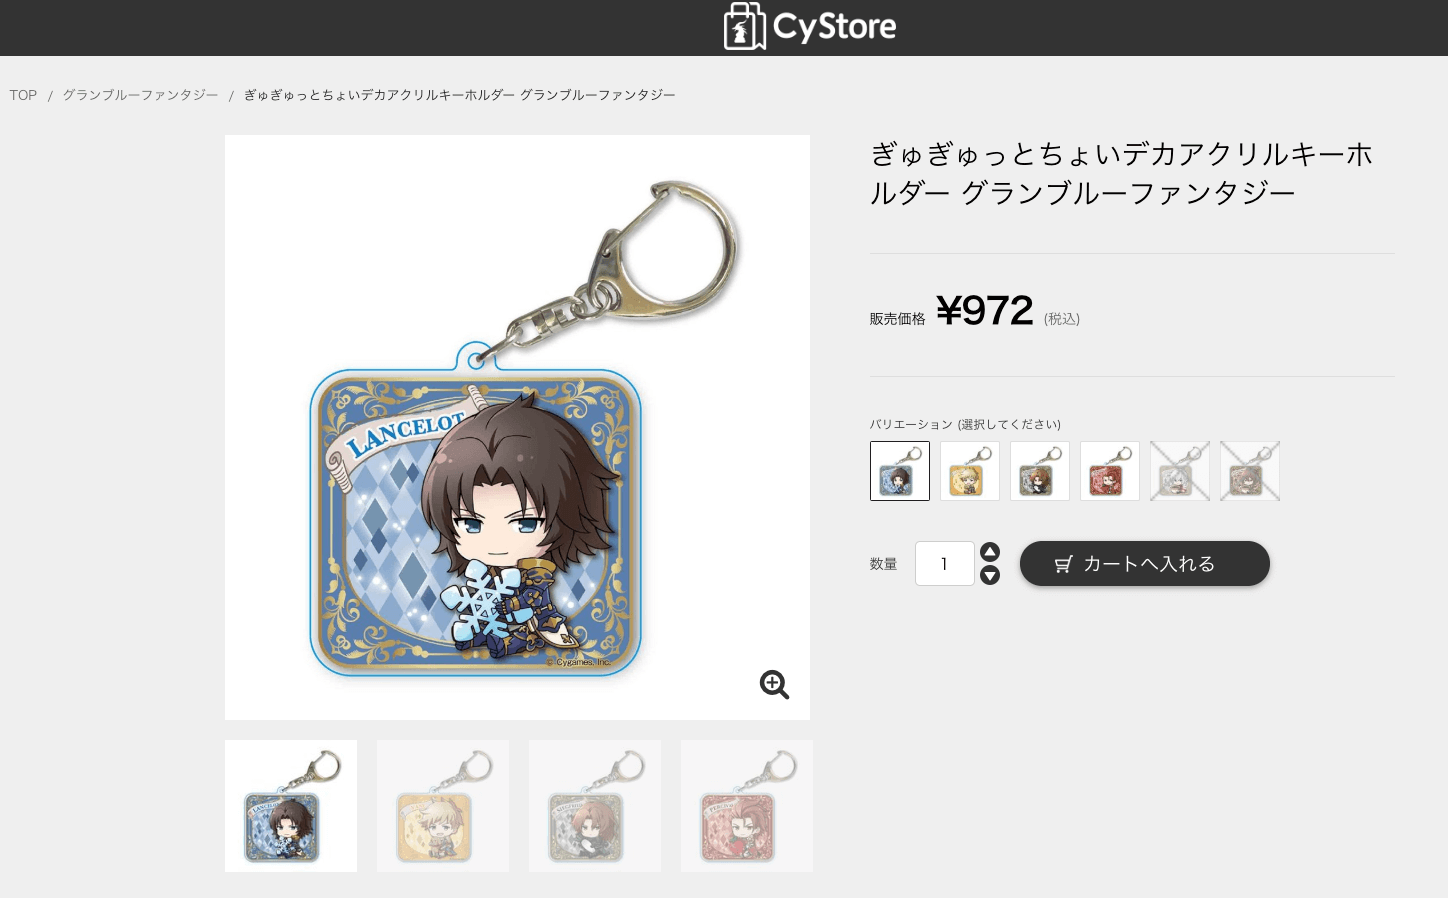 CyStore Item Page